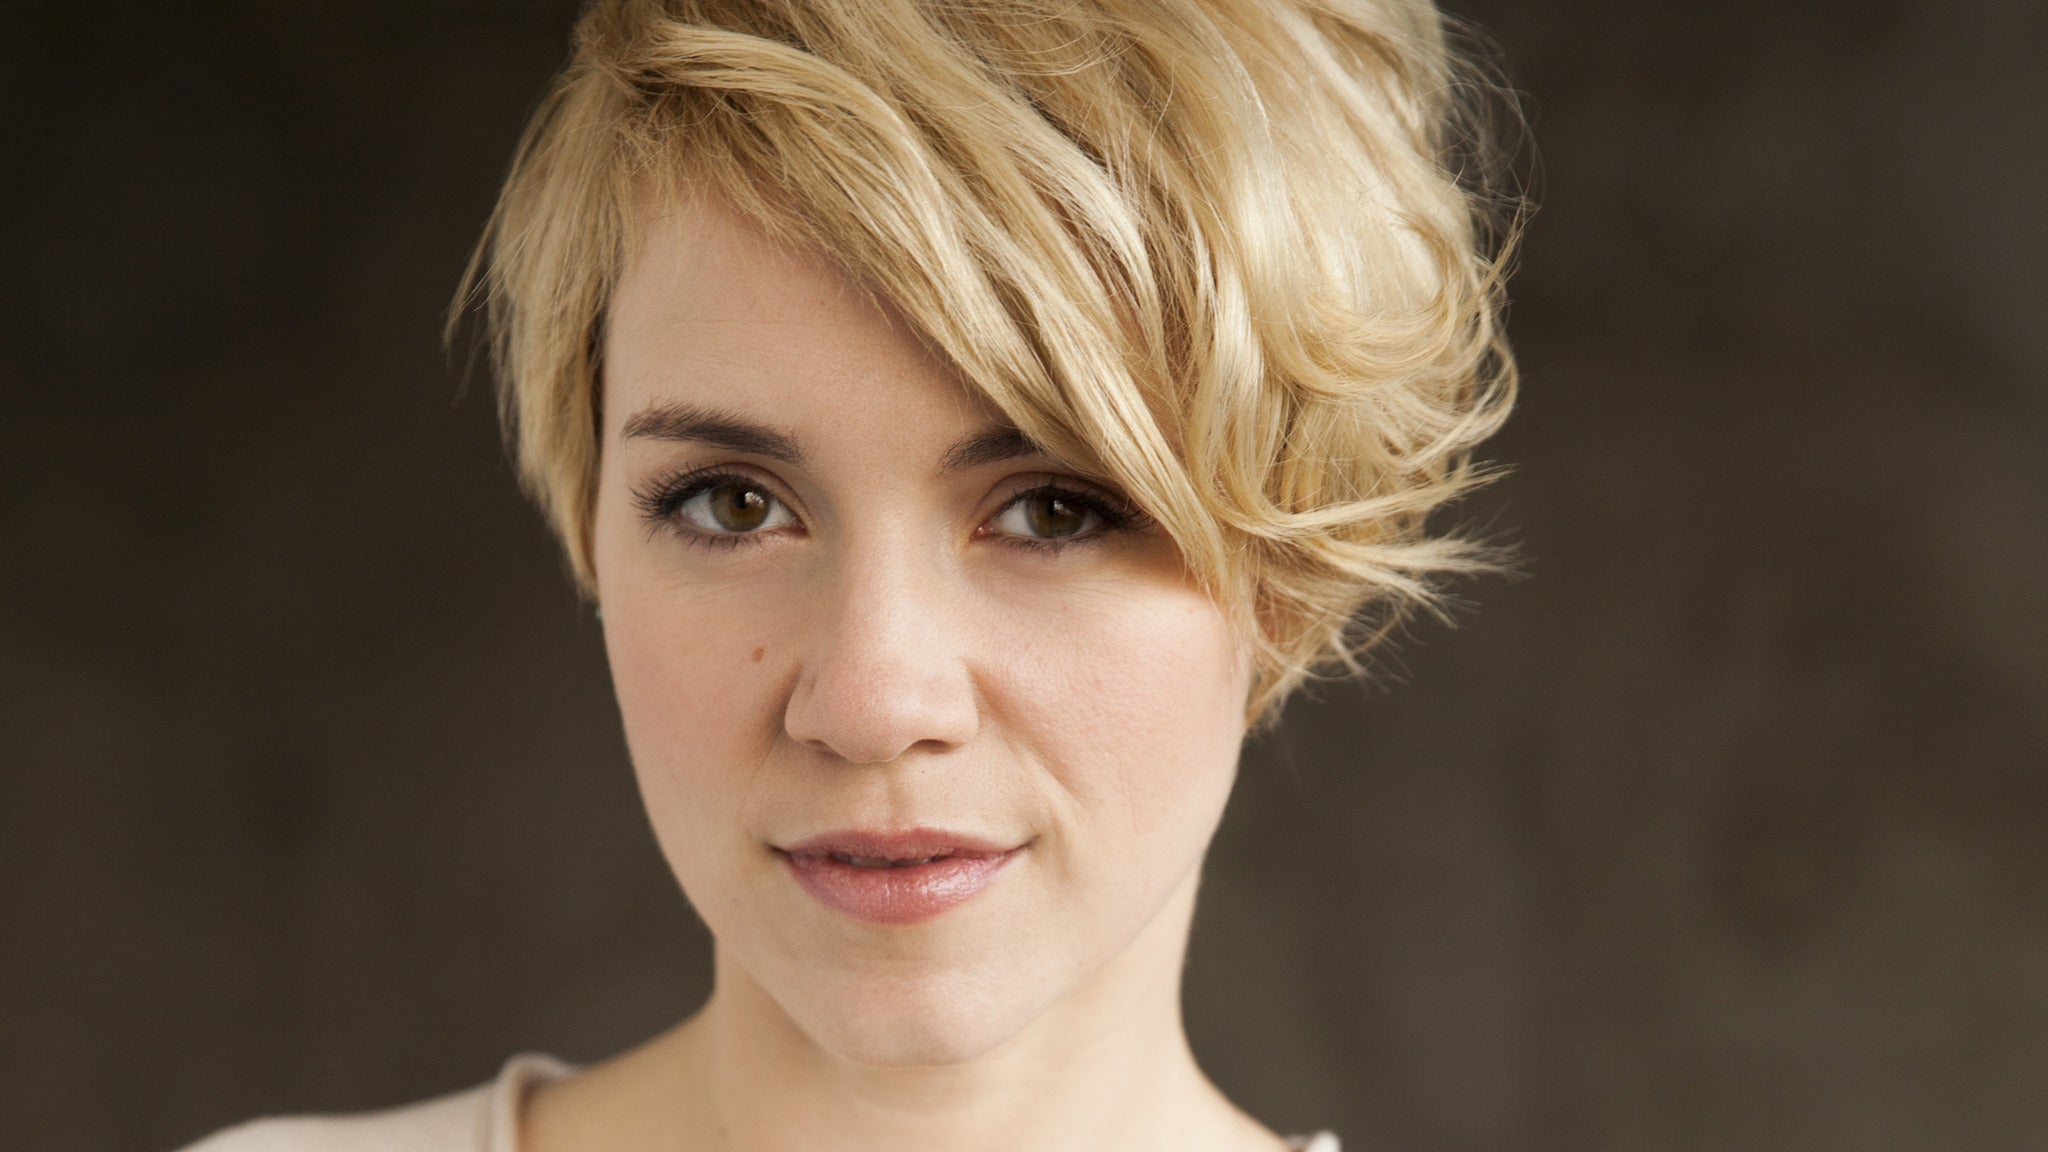 Alice Wetterlund at Punch Line Comedy Club - San Francisco - San Francisco, CA 94111